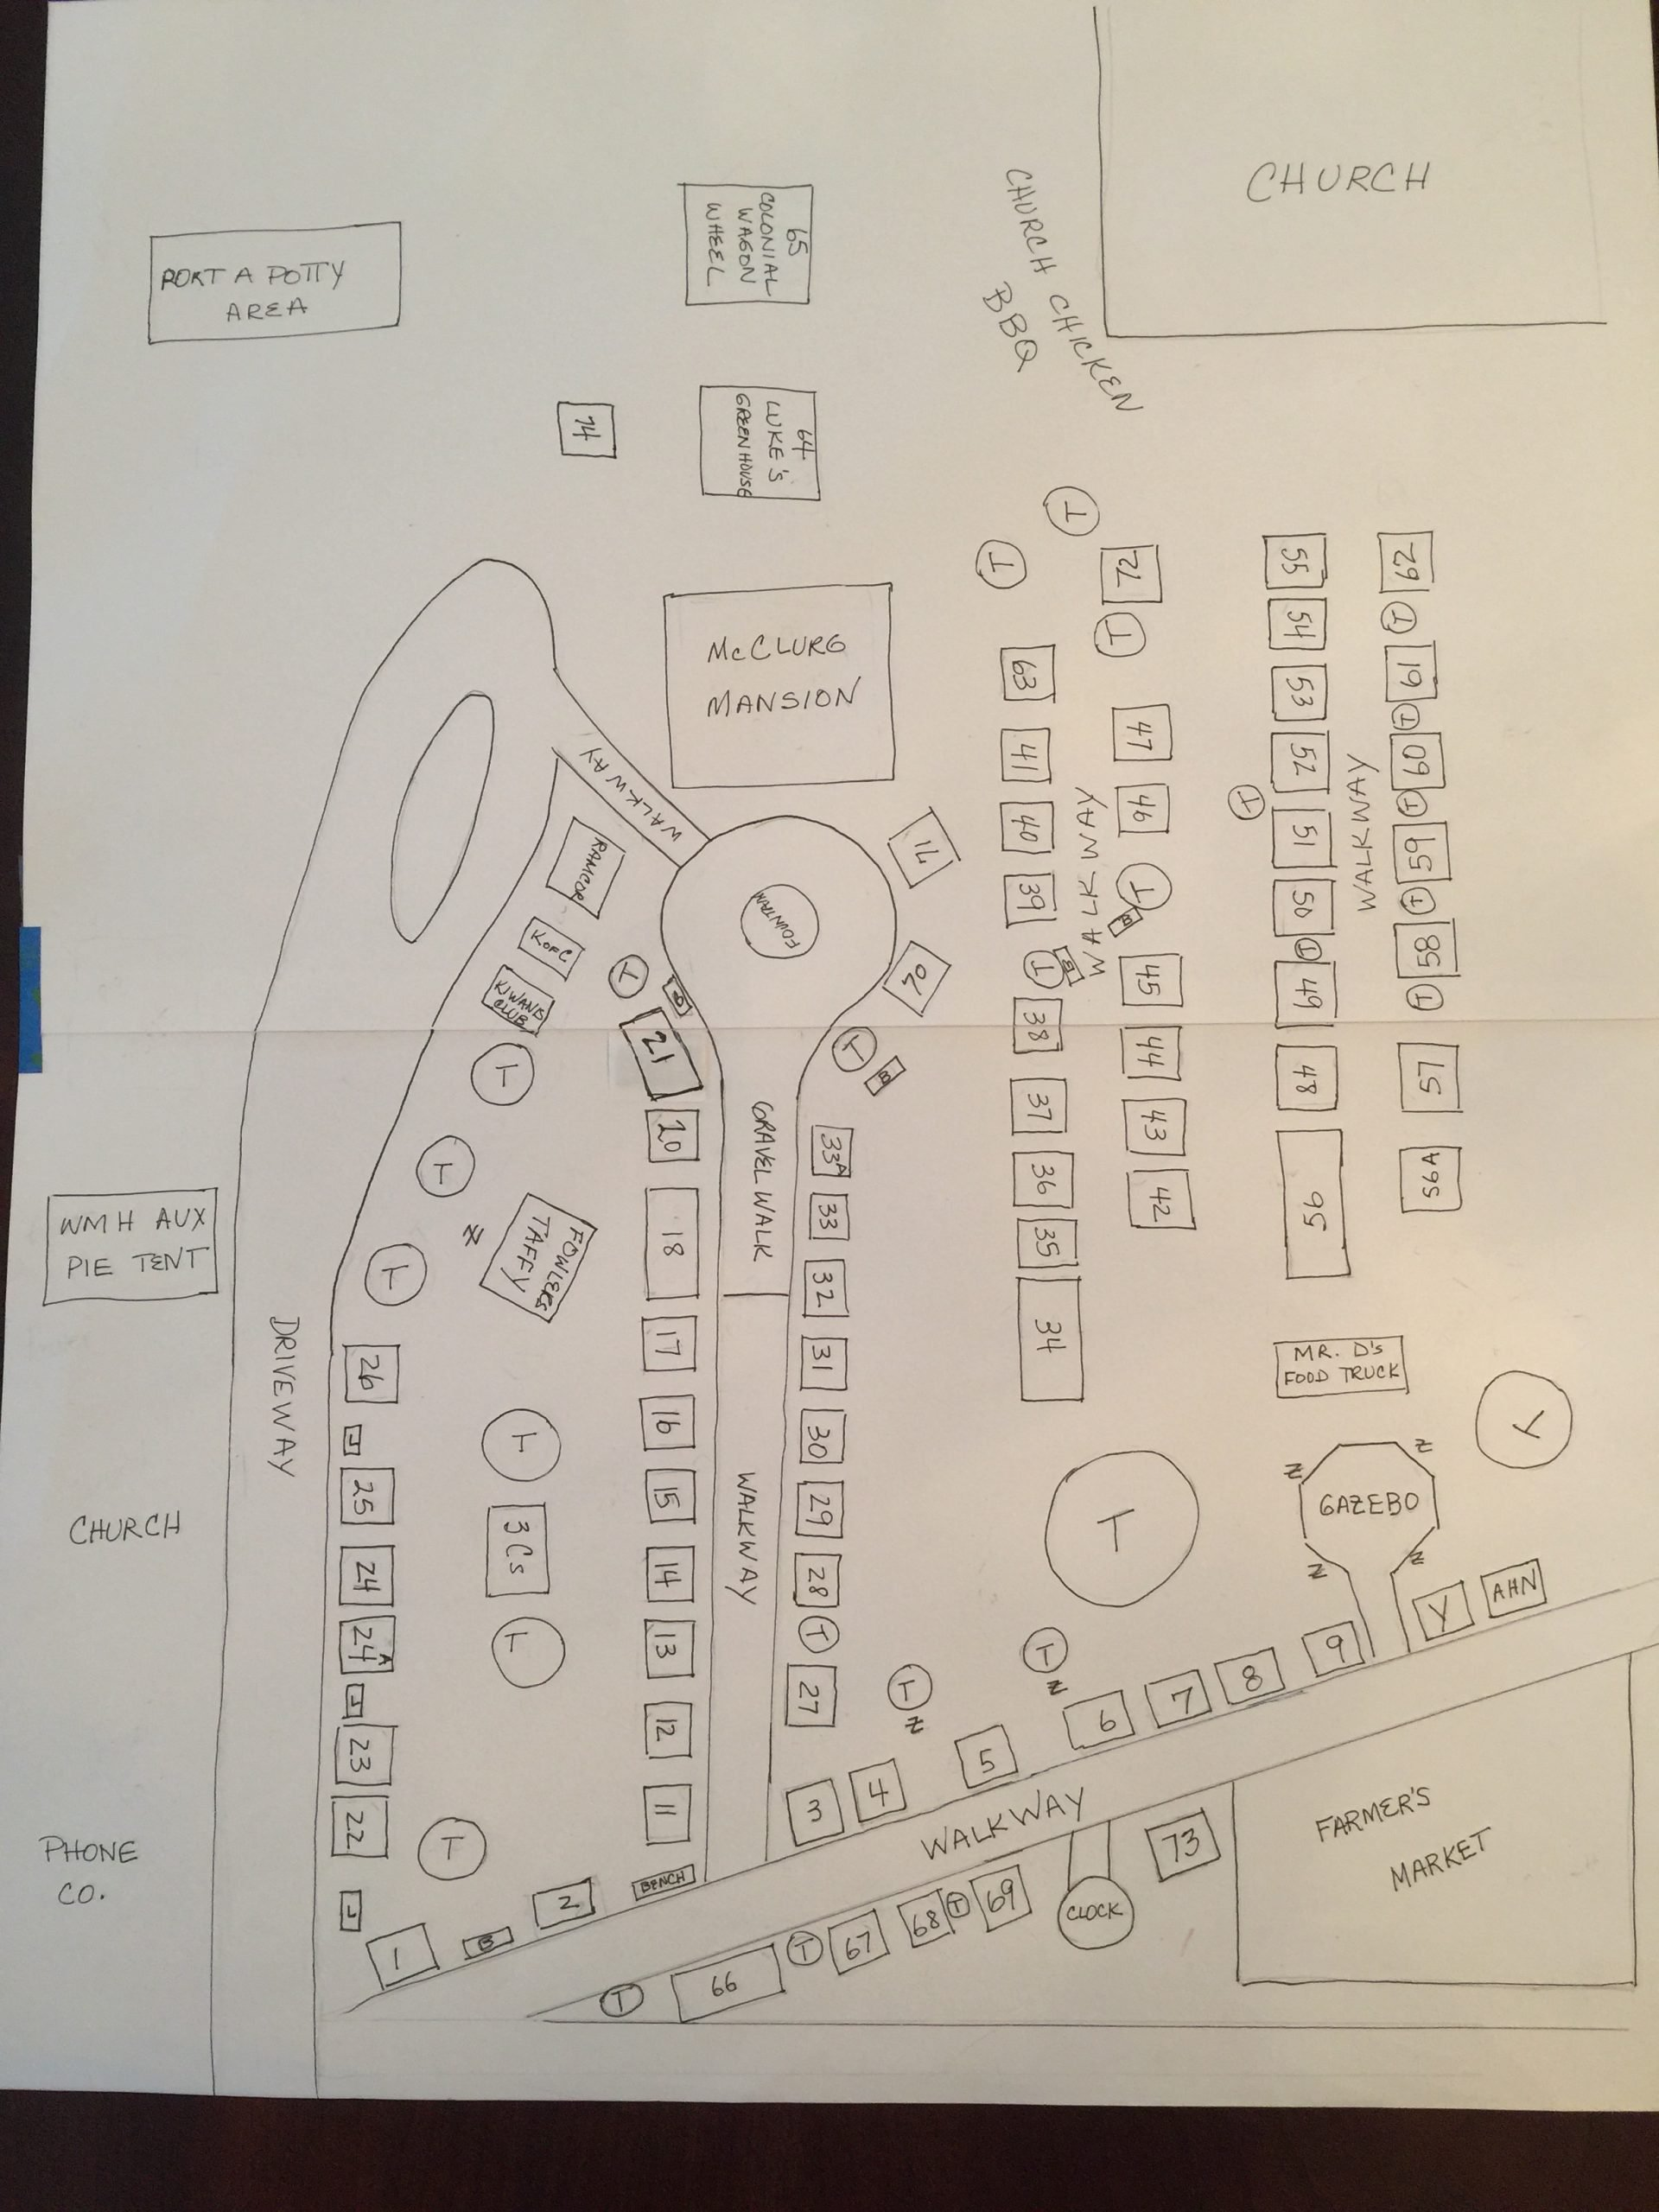 YWCA Westfield Arts and Crafts Festival Map